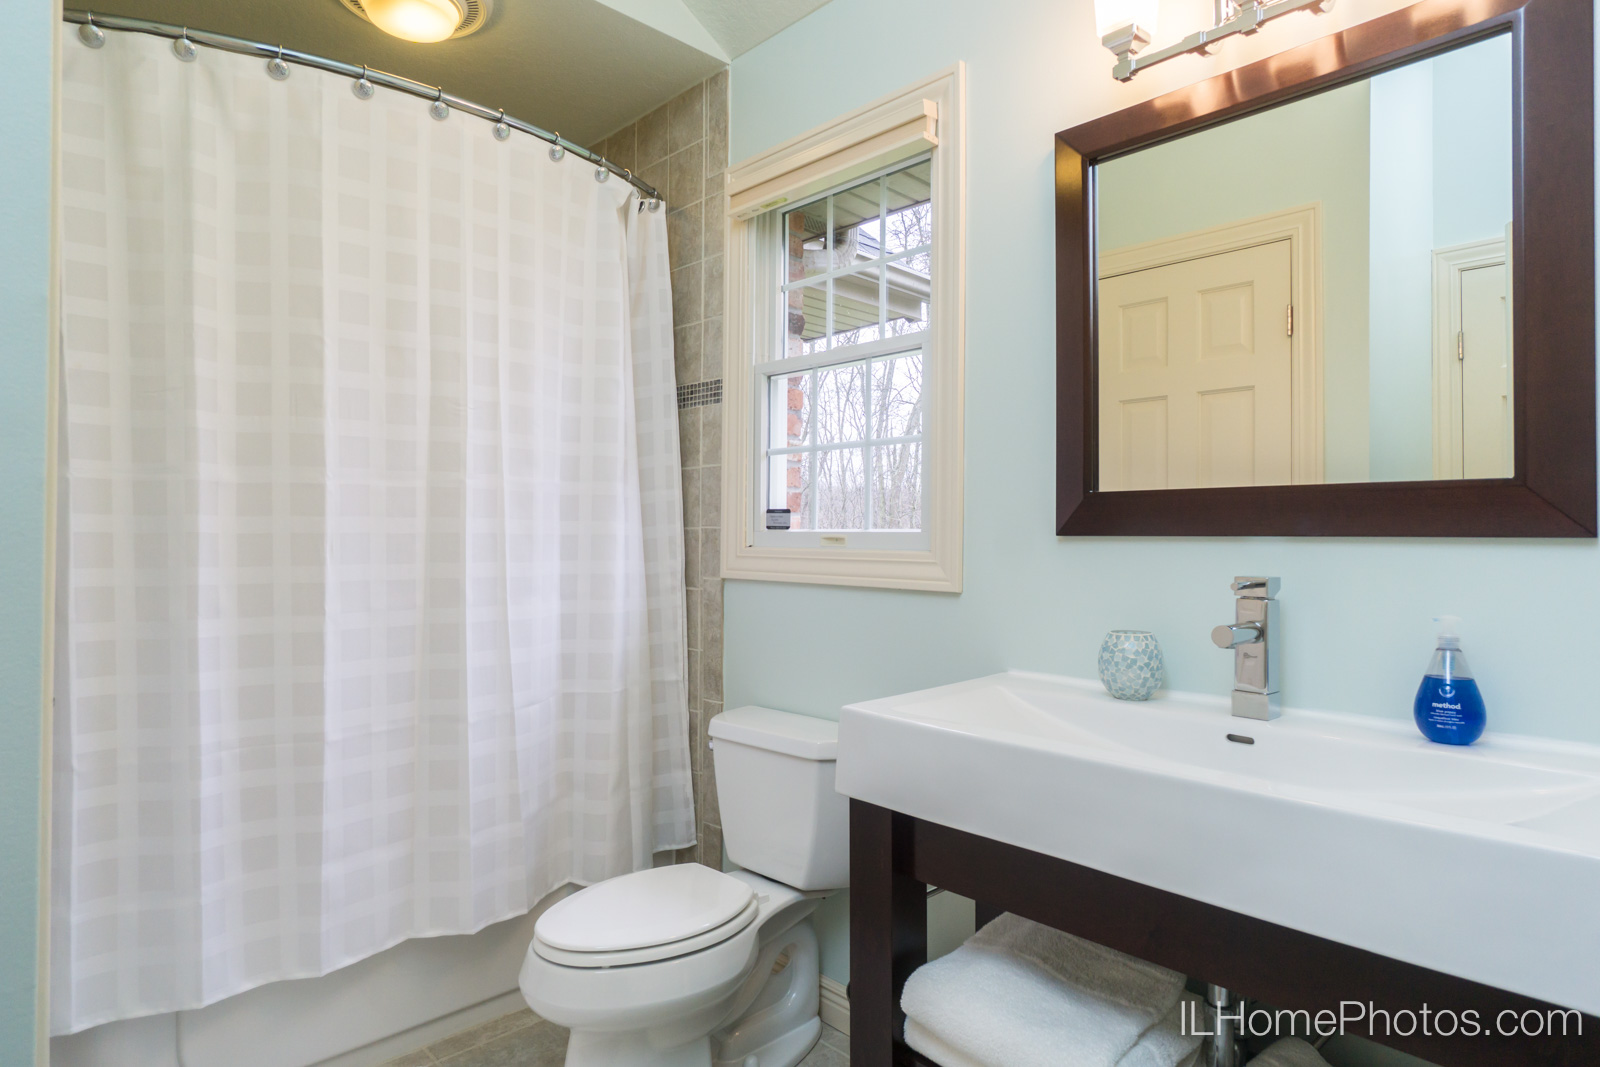 Interior bathroom photograph for real estate :: Illinois Home Photography by Michael Gowin, Lincoln, IL